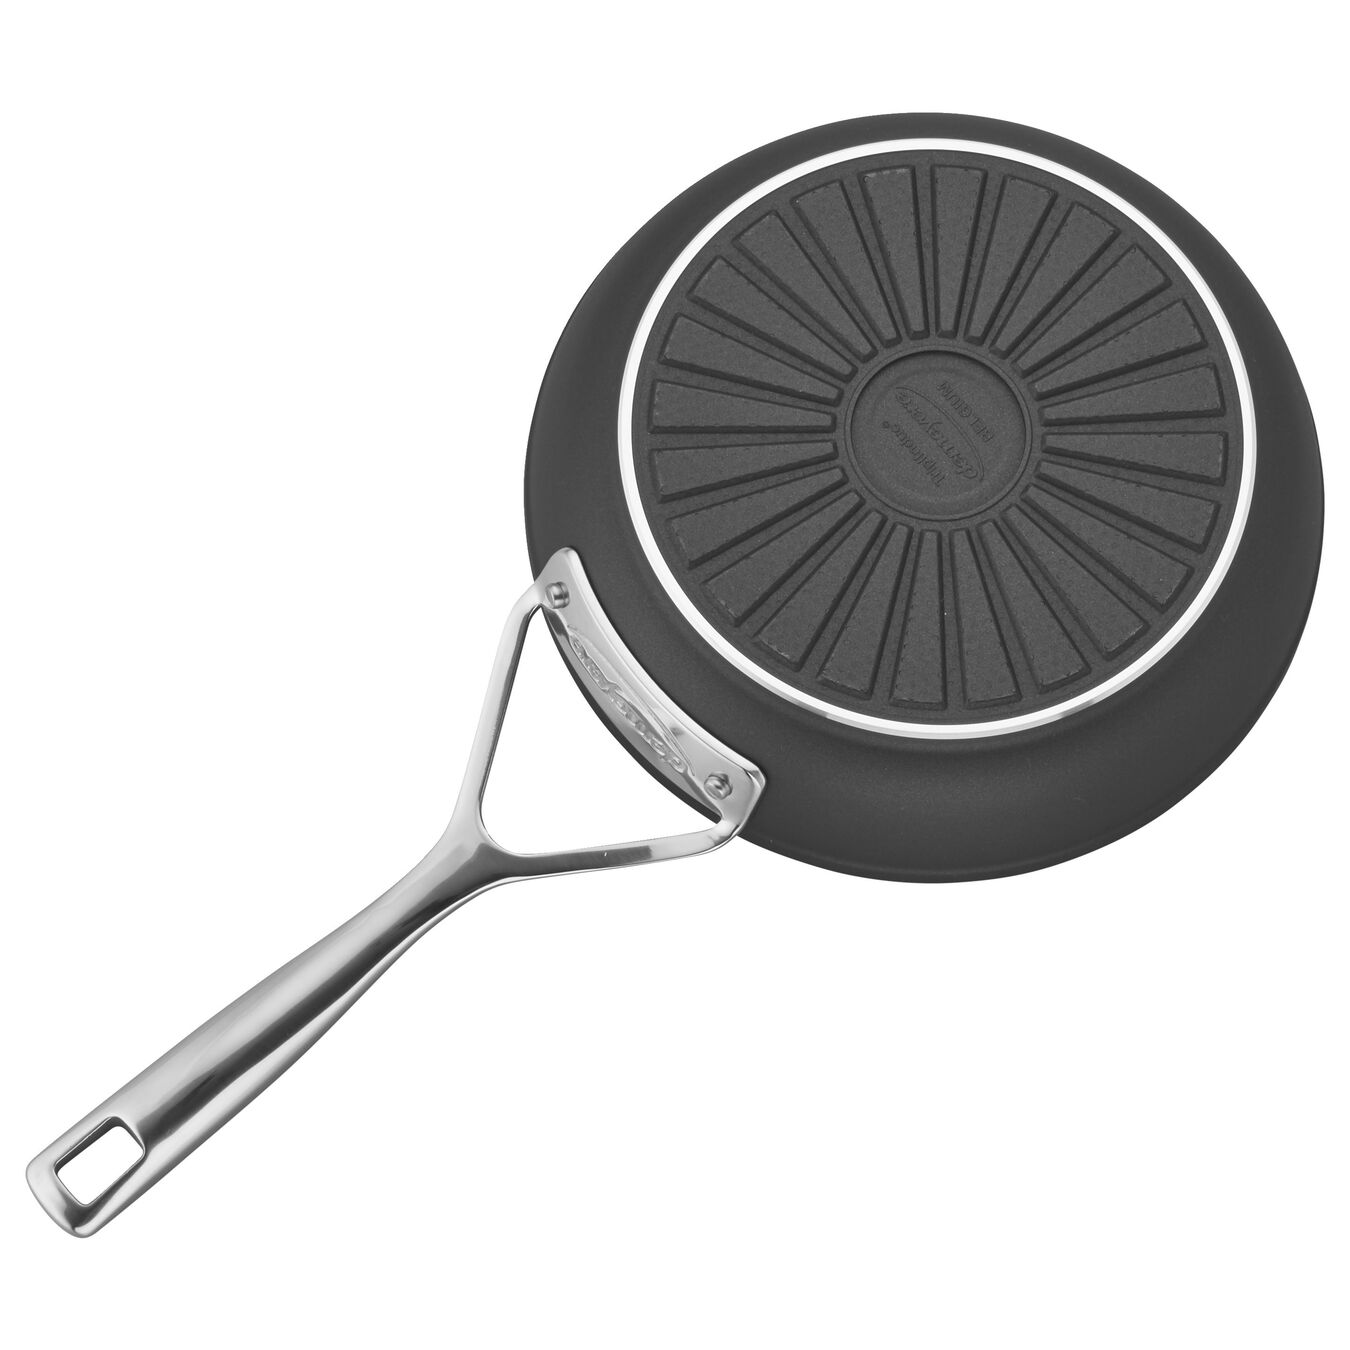 8-inch Aluminum Nonstick Fry Pan,,large 2